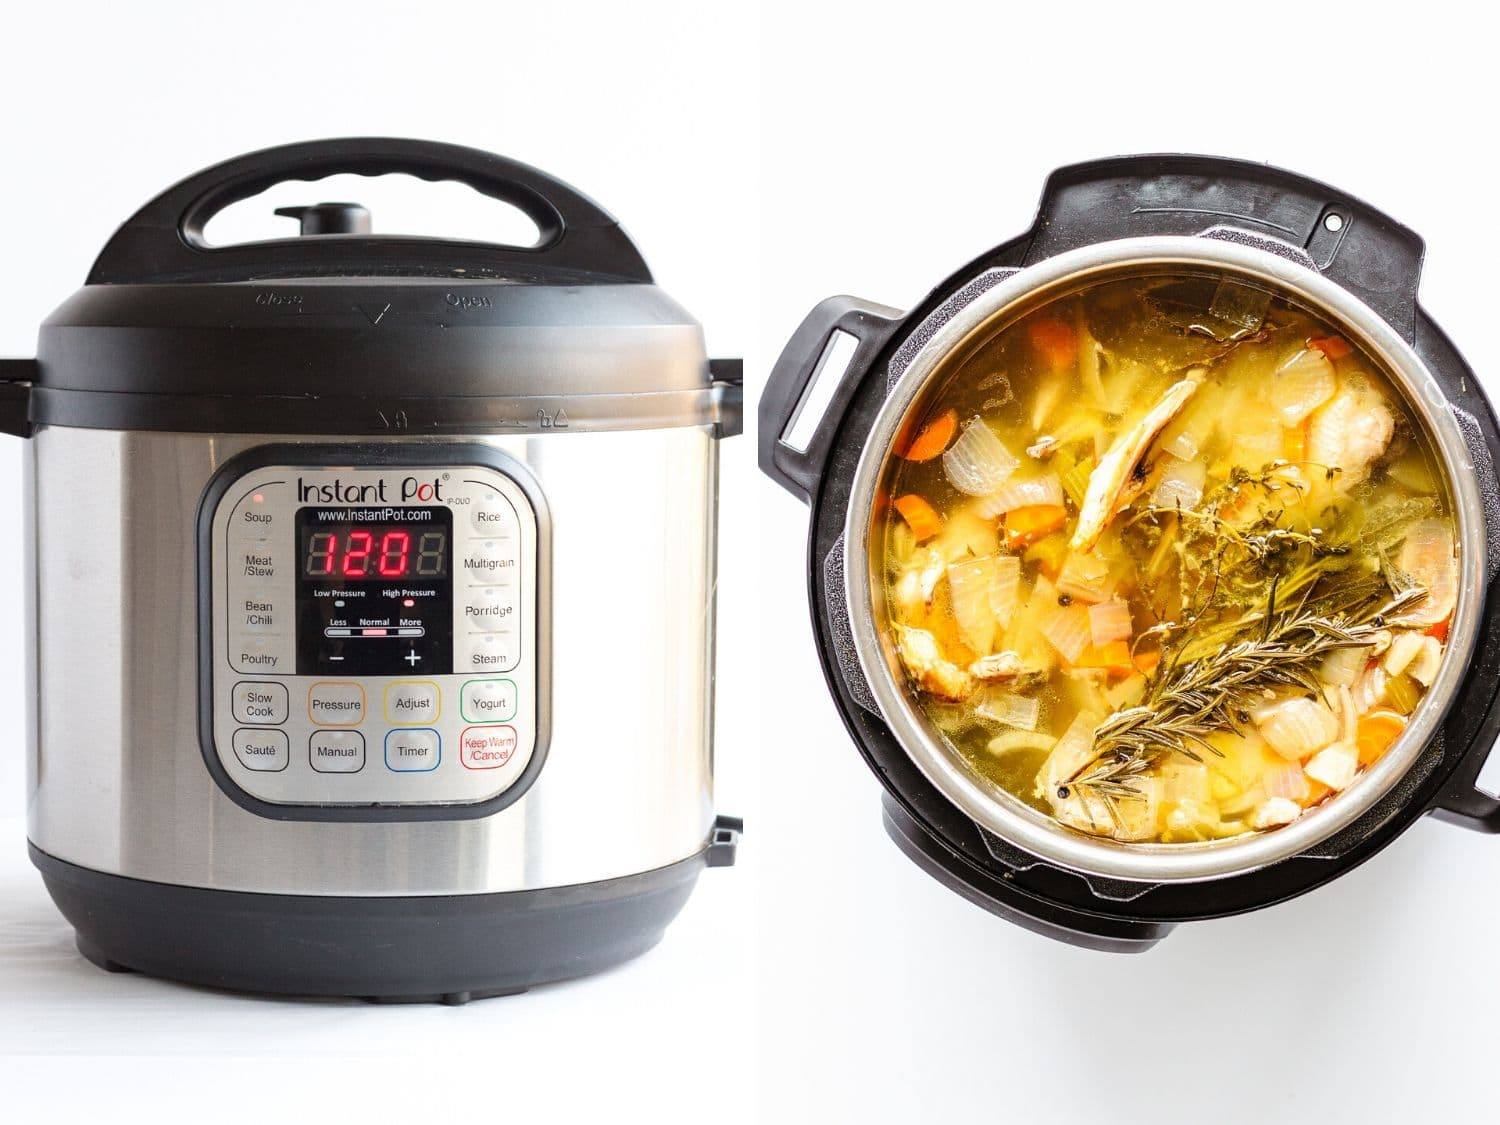 Collage of two photos showing an Instant Pot and the finished chicken bone broth (stock) inside.